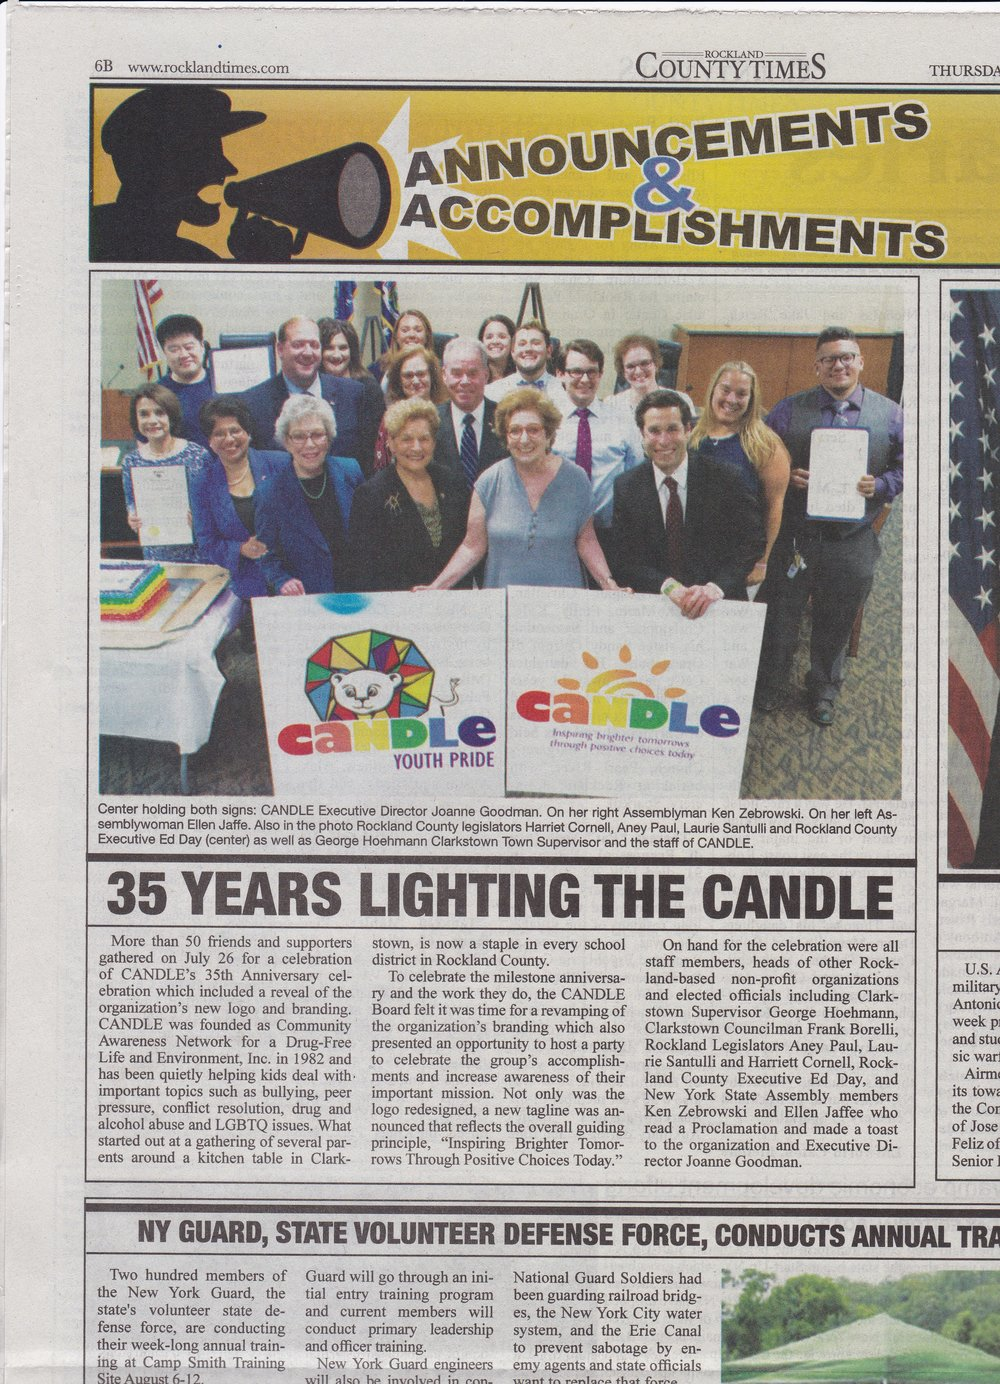 Candle celebration in rockland county times.jpg